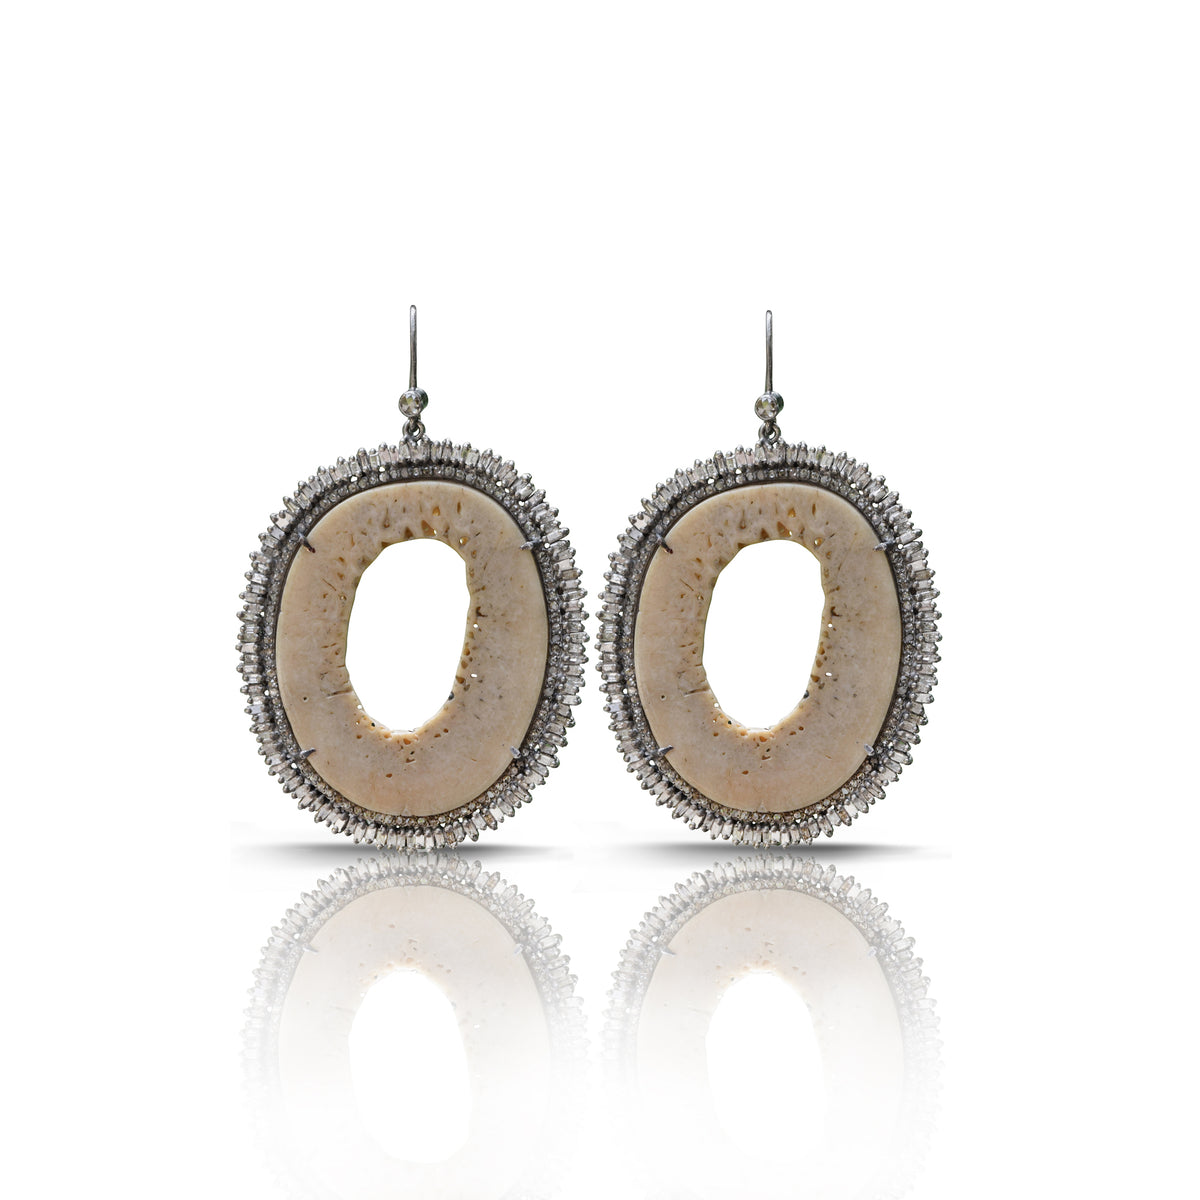 Fossilized Oosik Diamond Earrings